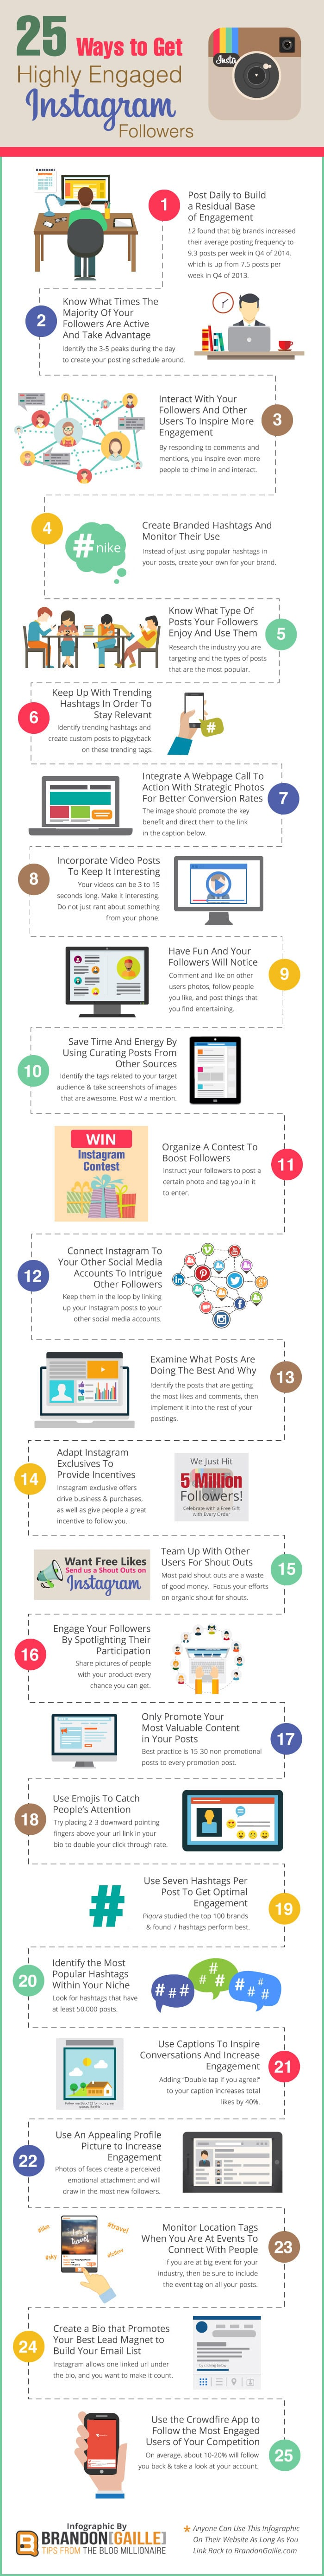 Get Engaging Instagram Followers Infographic